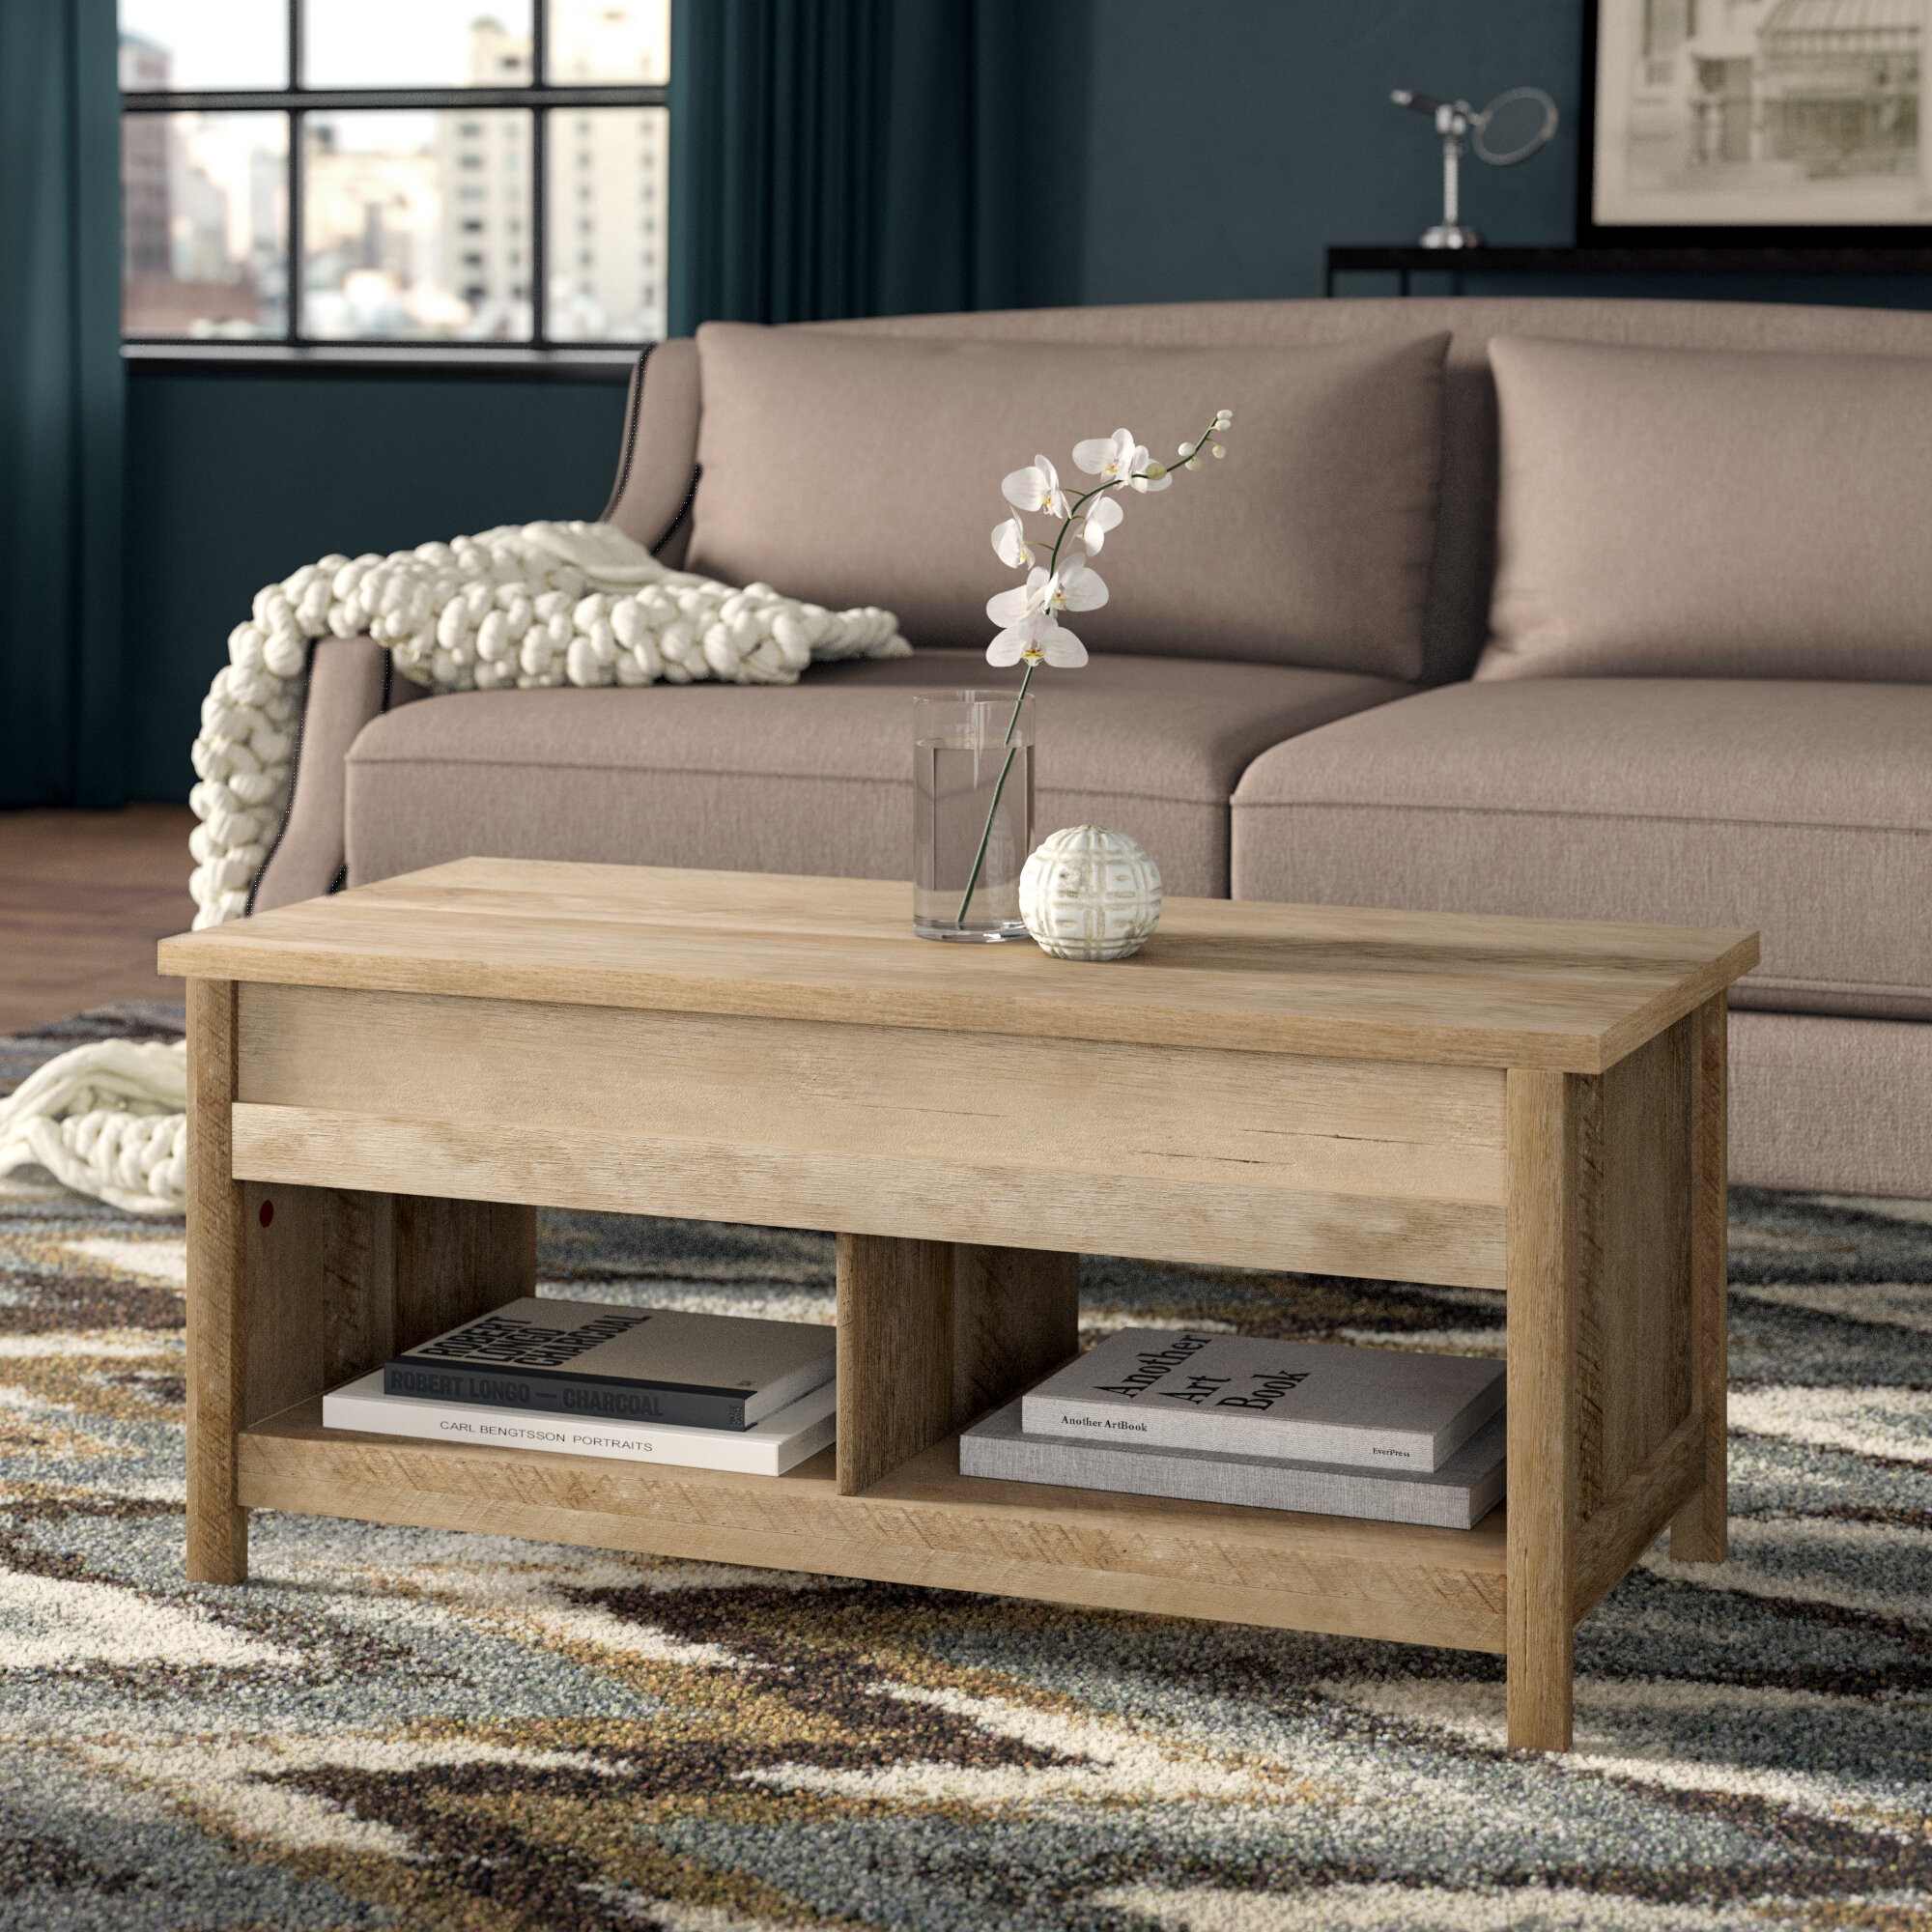 Another Name For Coffee Table Hipenmoeder Nl